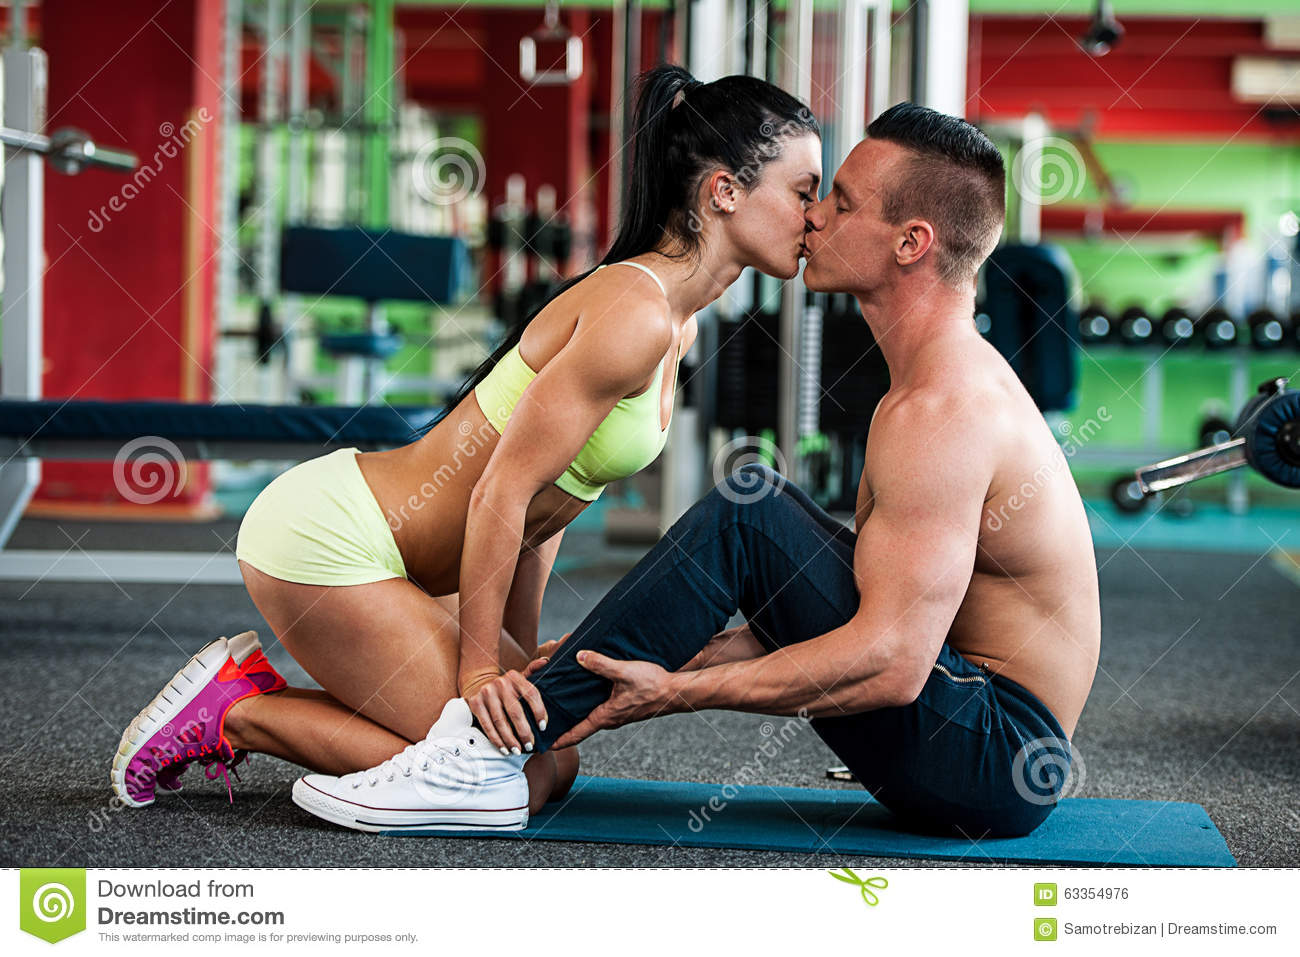 Fitness Couple Workout Fit Man And Woman Train In Gym Stock Photo Image Of Male Health 63354976 But here we measured 80 pairs of jeans that all boasted a 32 inch. dreamstime com